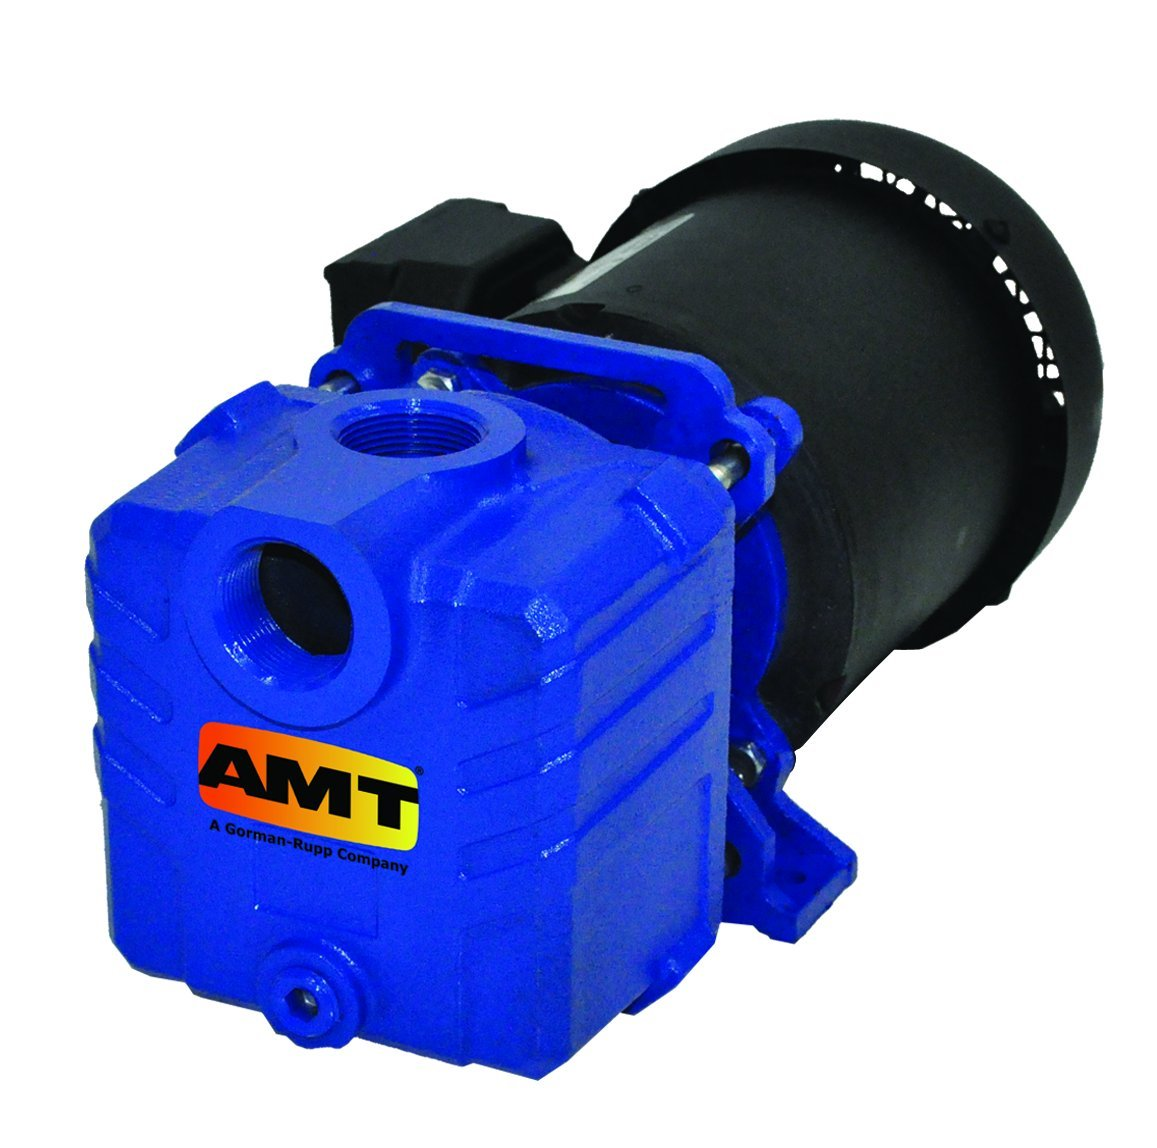 """AMT Pump 2851-95 Self-Priming Centrifugal Pump, Cast Iron, 1/3 HP, 1 Phase, 115/230 V, Curve A, 1"""" NPT Female Suction & Discharge Ports"""